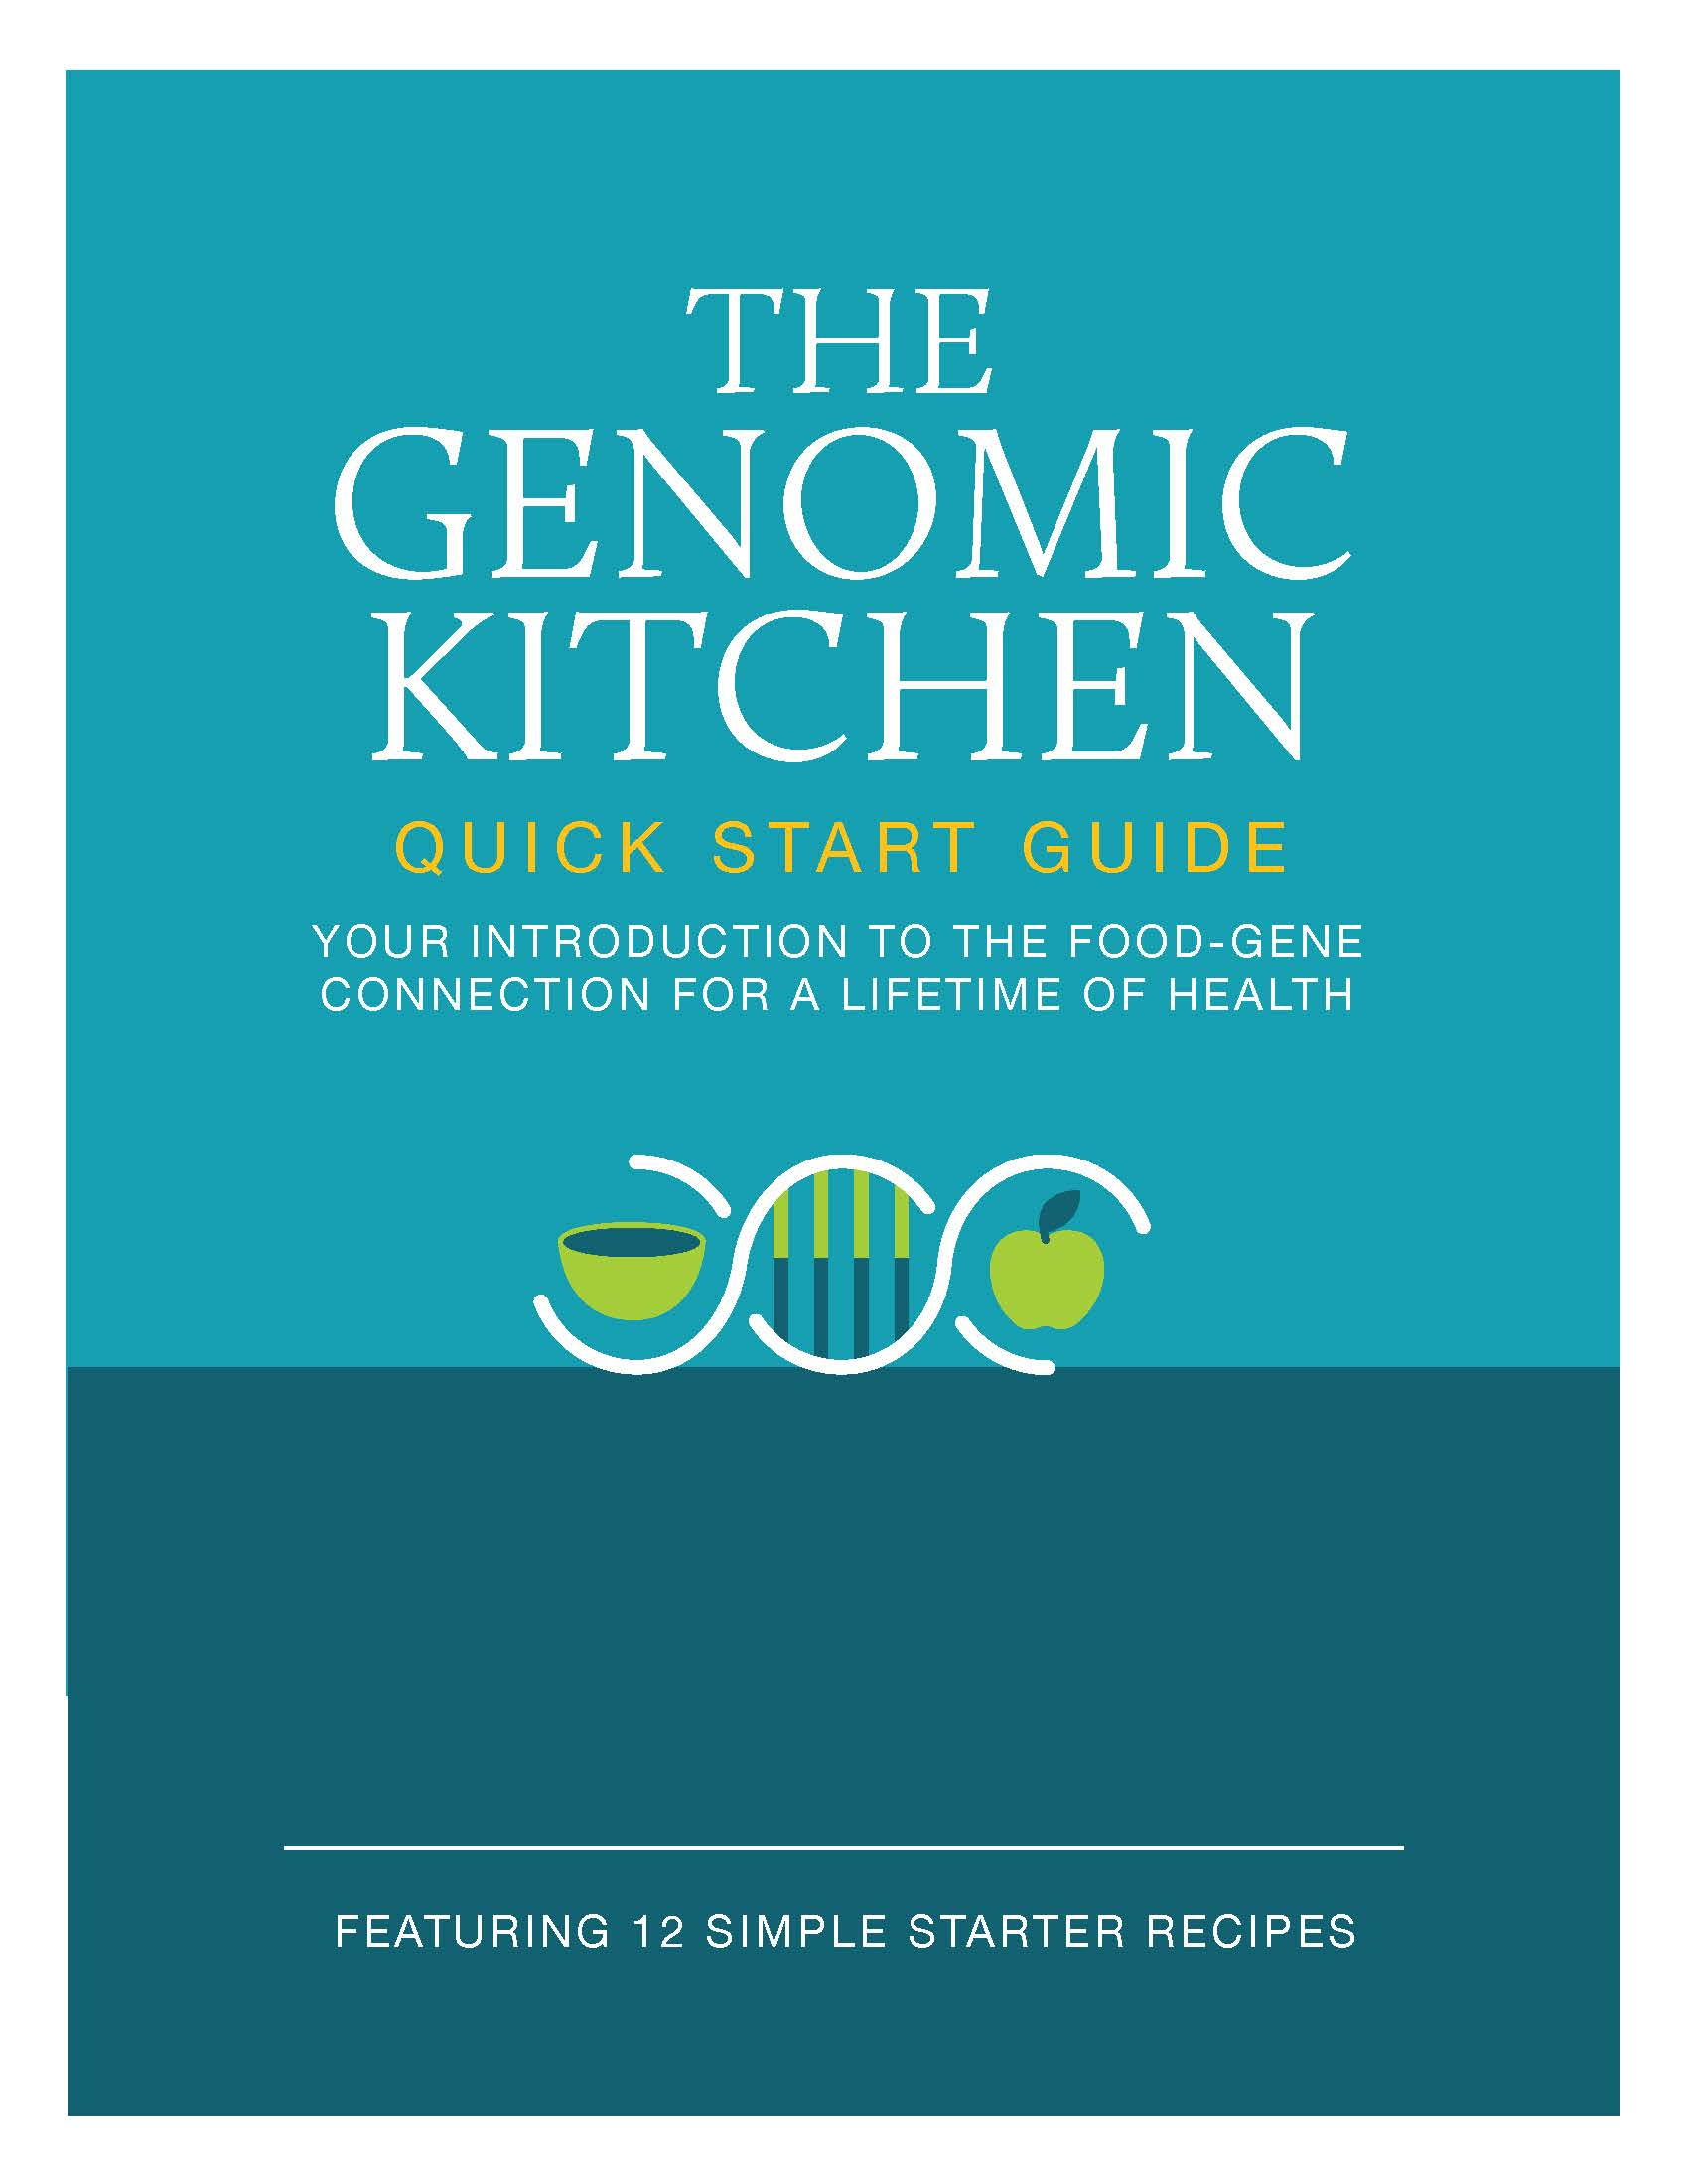 - Explore The Genomic Kitchen with our Quick Start Guide